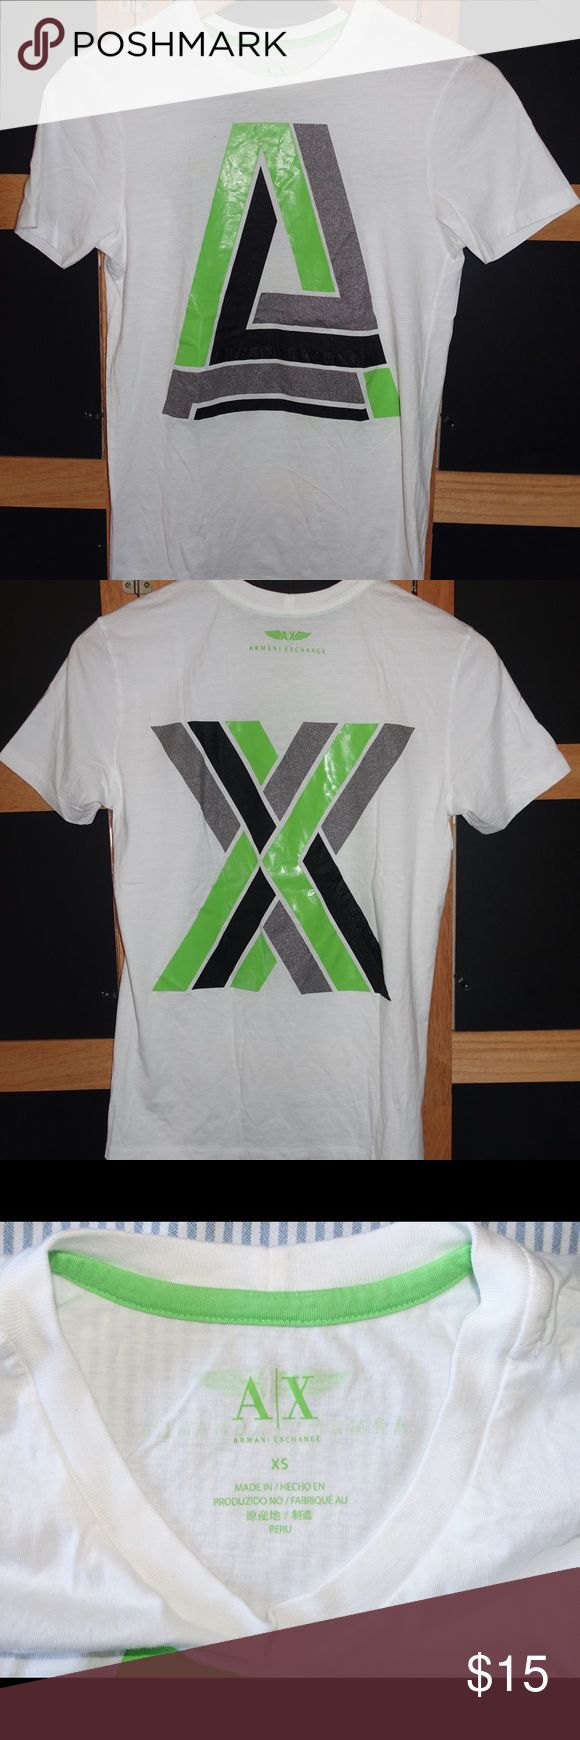 A/X Armani Exchange Men's Graphic Crew T-Shirt -XS For sale is pre-owned but excellent condition A/X Armani Exchange Men's Graphic Crew T-Shirt -XS. Very stylish with a graphic print. Selling because it doesn't fit anymore. Small hole (pictured) from washing but shirt still on excellent condition. A/X Armani Exchange Shirts Tees - Short Sleeve